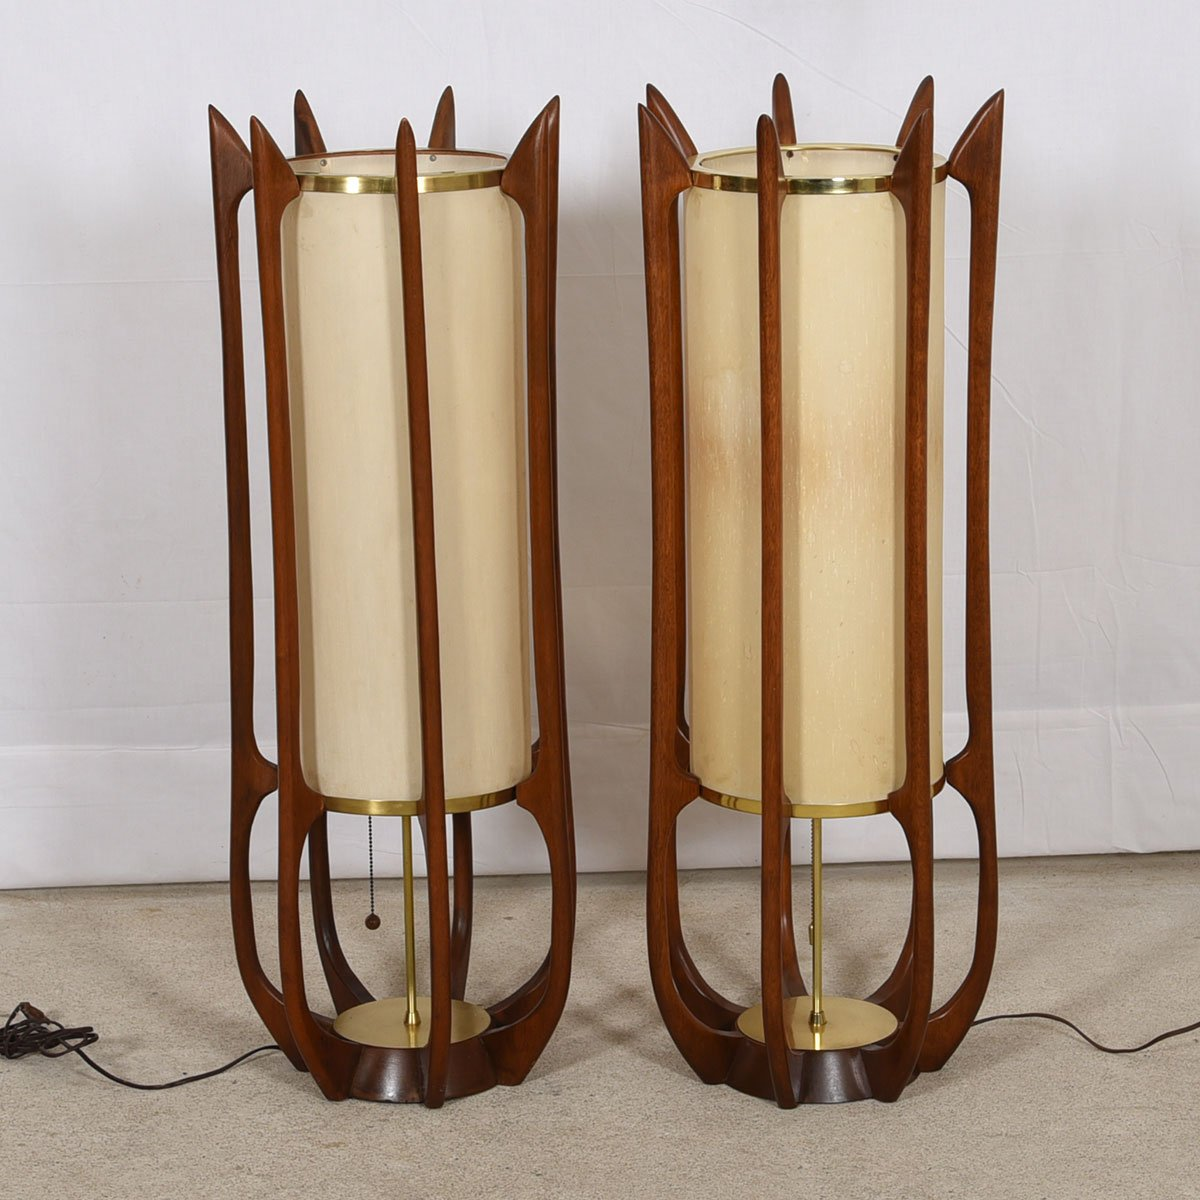 Pair of Adrian Pearsall Style Walnut and Brass Sculptural Lamps